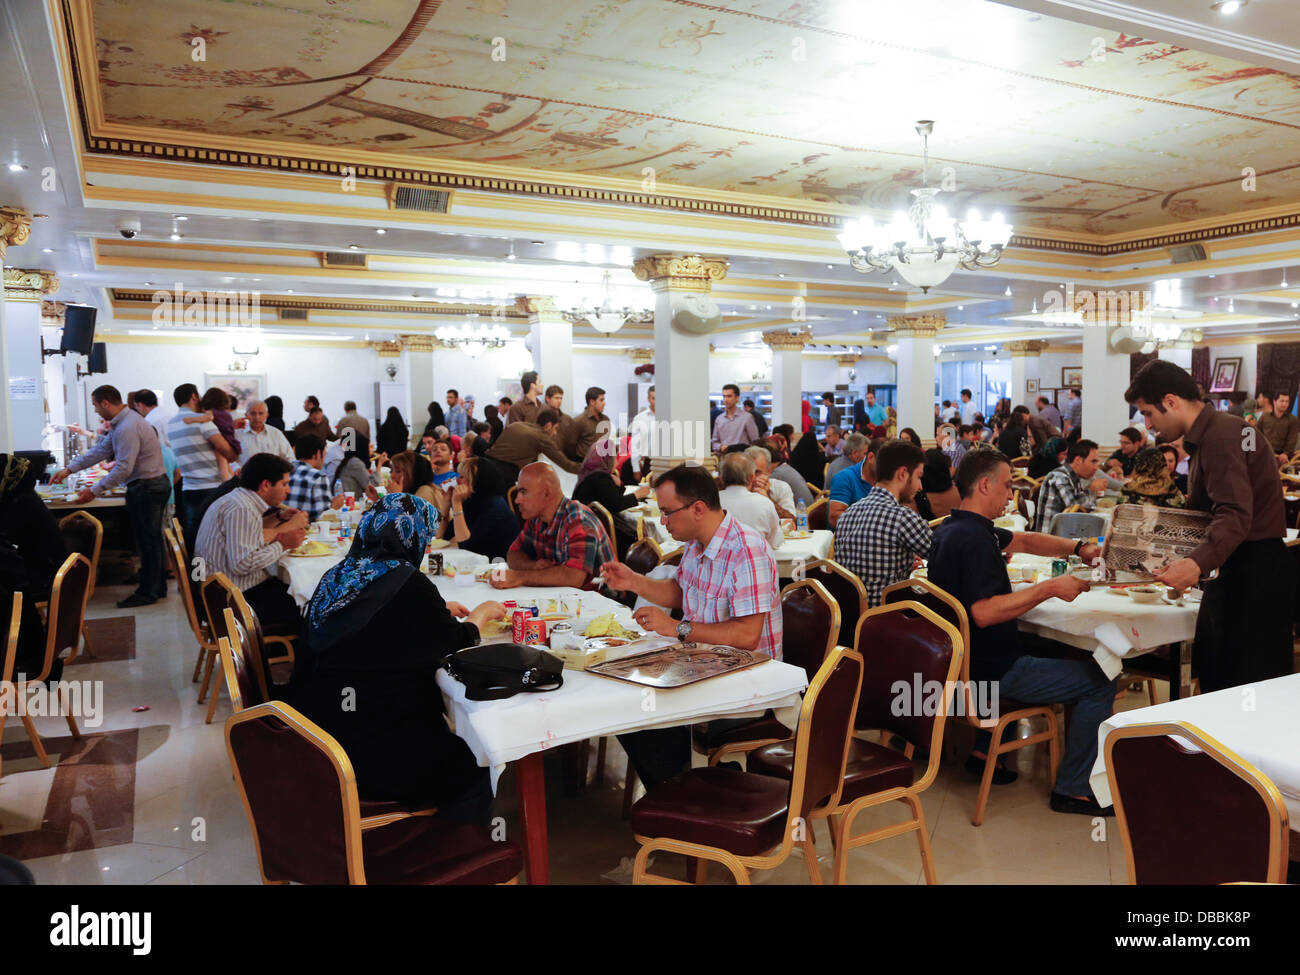 Crowded restaurant table - Patrons Eating At Hani Self Service Restaurant Tehran Iran Stock Image